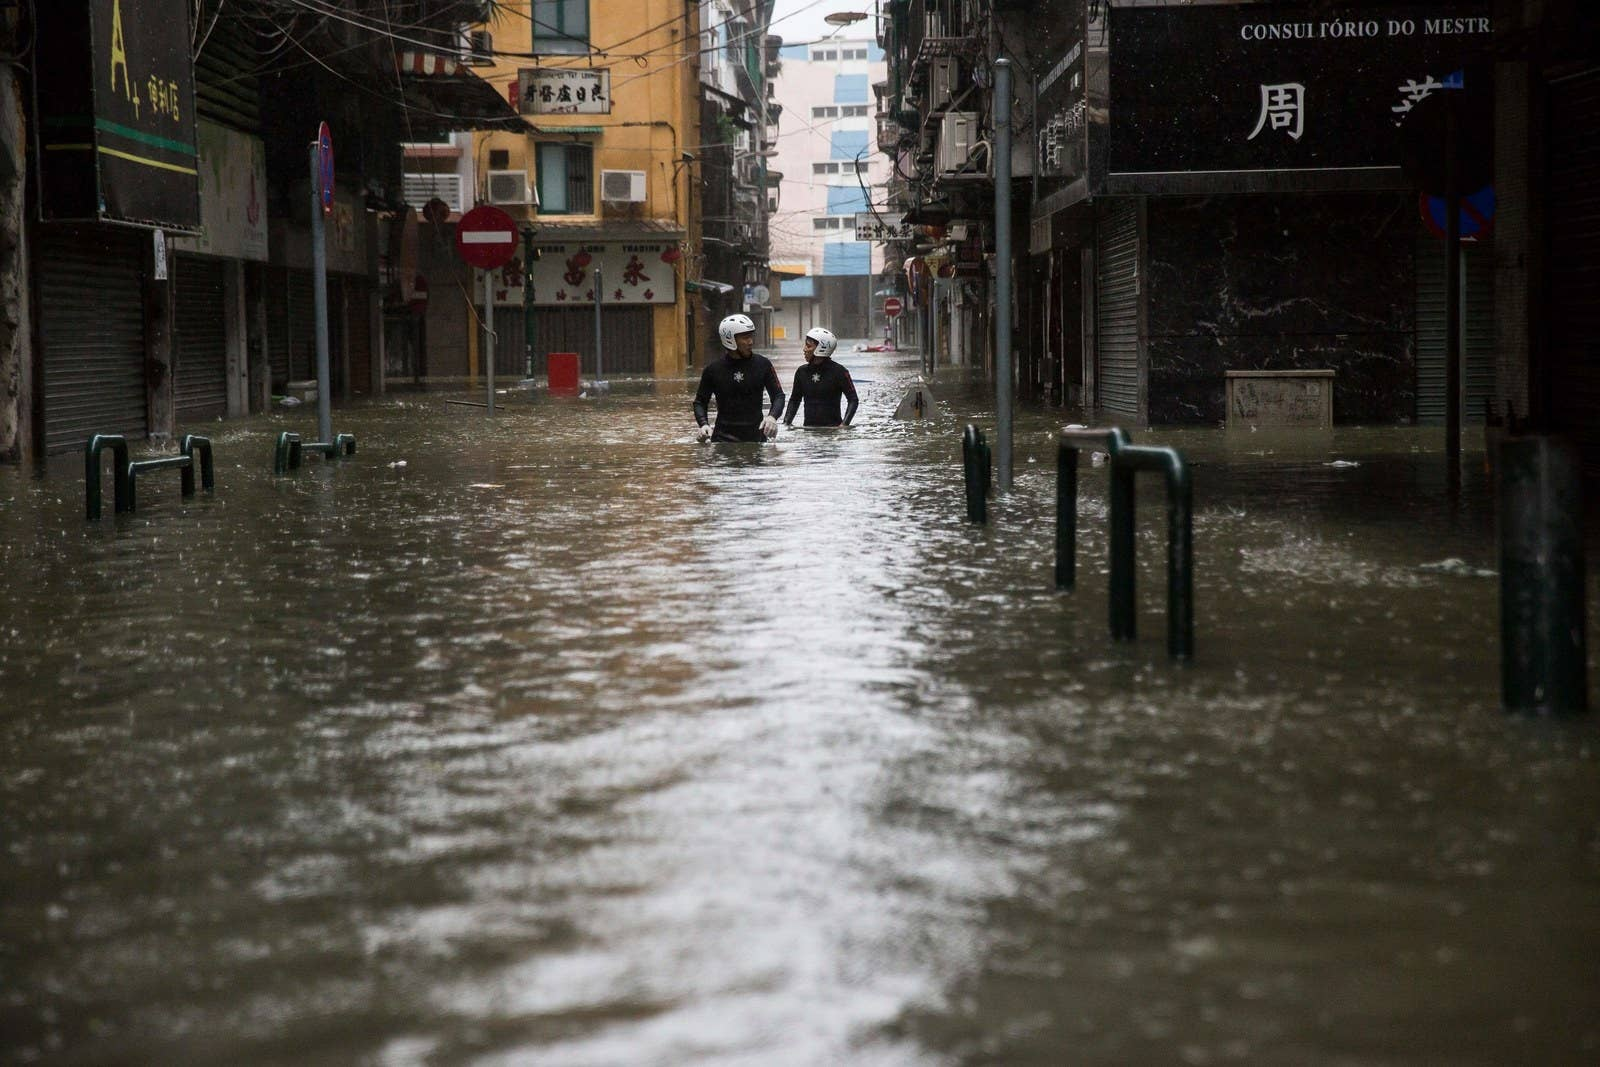 Rescue workers make their way through floodwaters during a rescue operation after Super Typhoon Mangkhut passed through Macau on Sept. 16.